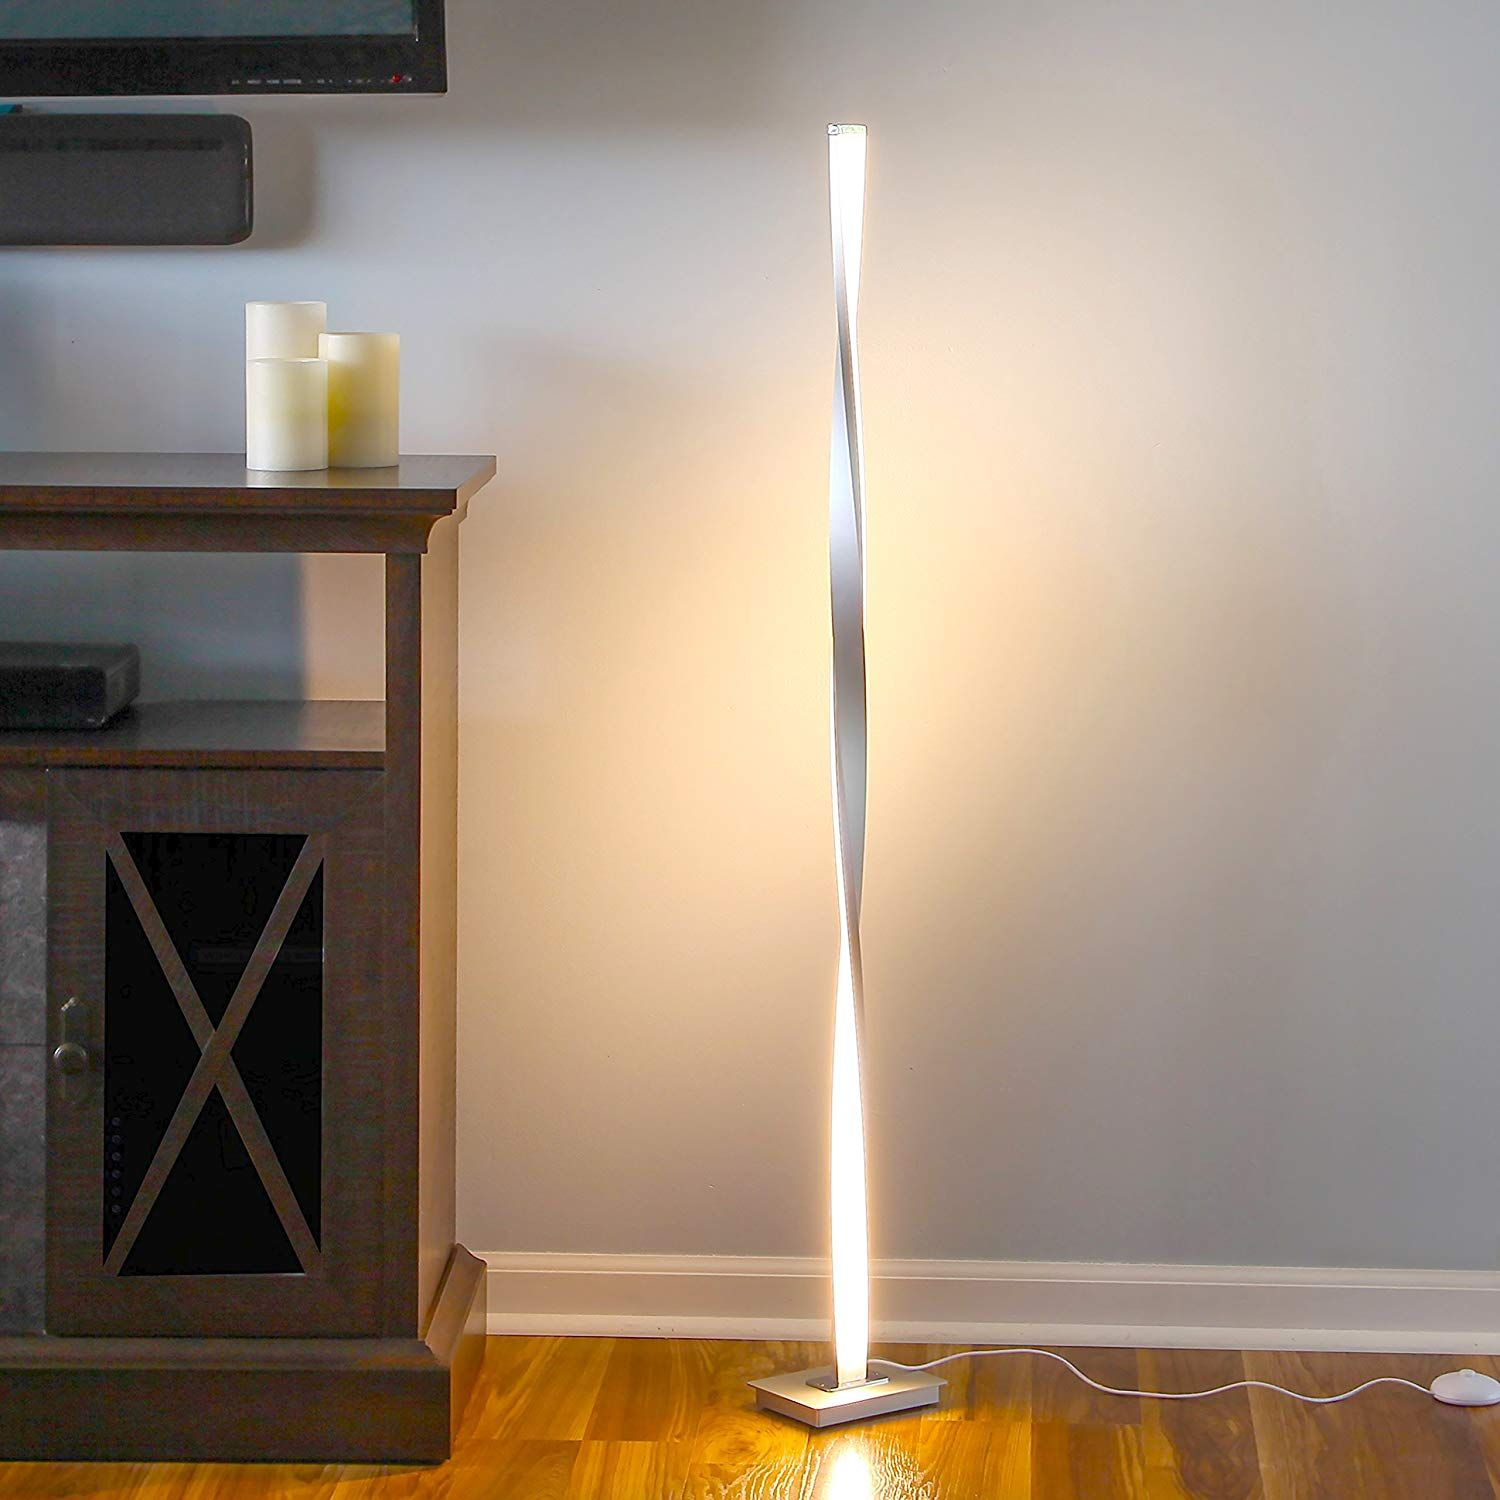 Awesome Living Room Floor Lamps Design Hixpce Info Standing Lamp Led Floor Lights Lamps Living Room